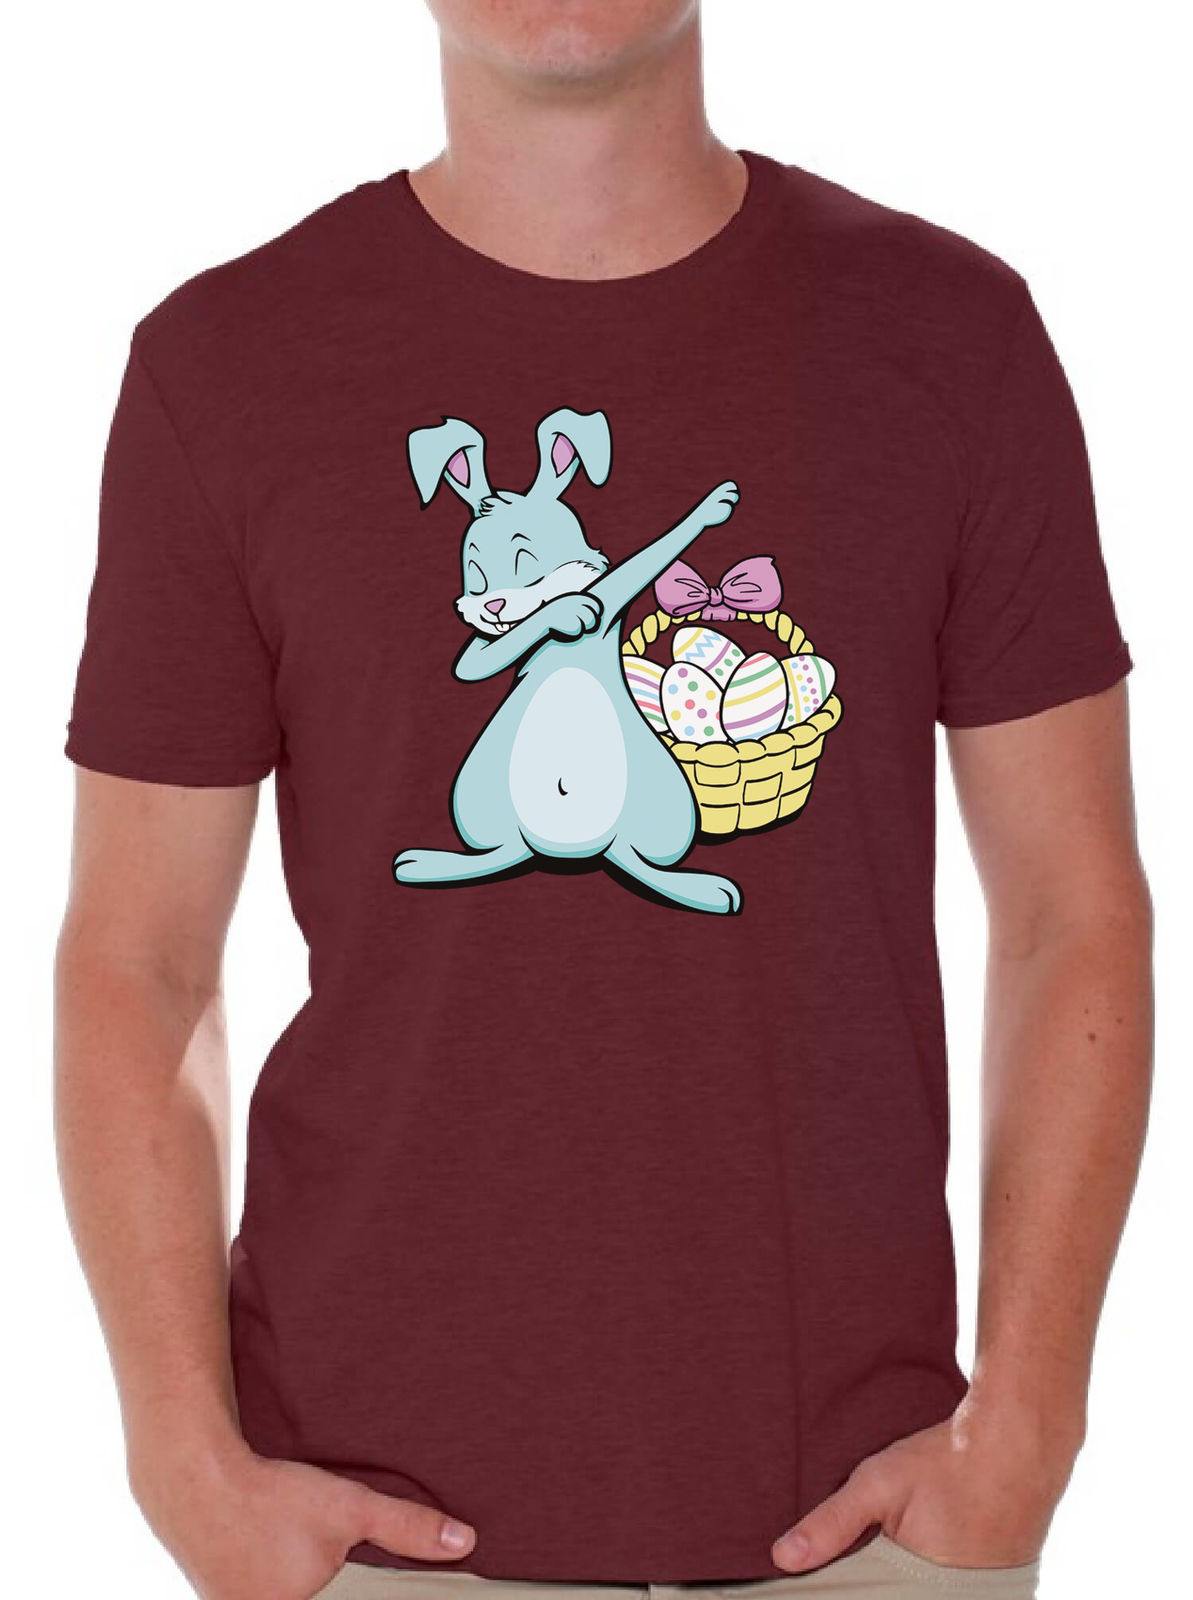 Dabbing easter bunny shirt easter shirt for men happy easter shirt dabbing easter bunny shirt easter shirt for men happy easter shirt easter gifts original tops novelty in t shirts from mens clothing accessories on negle Gallery